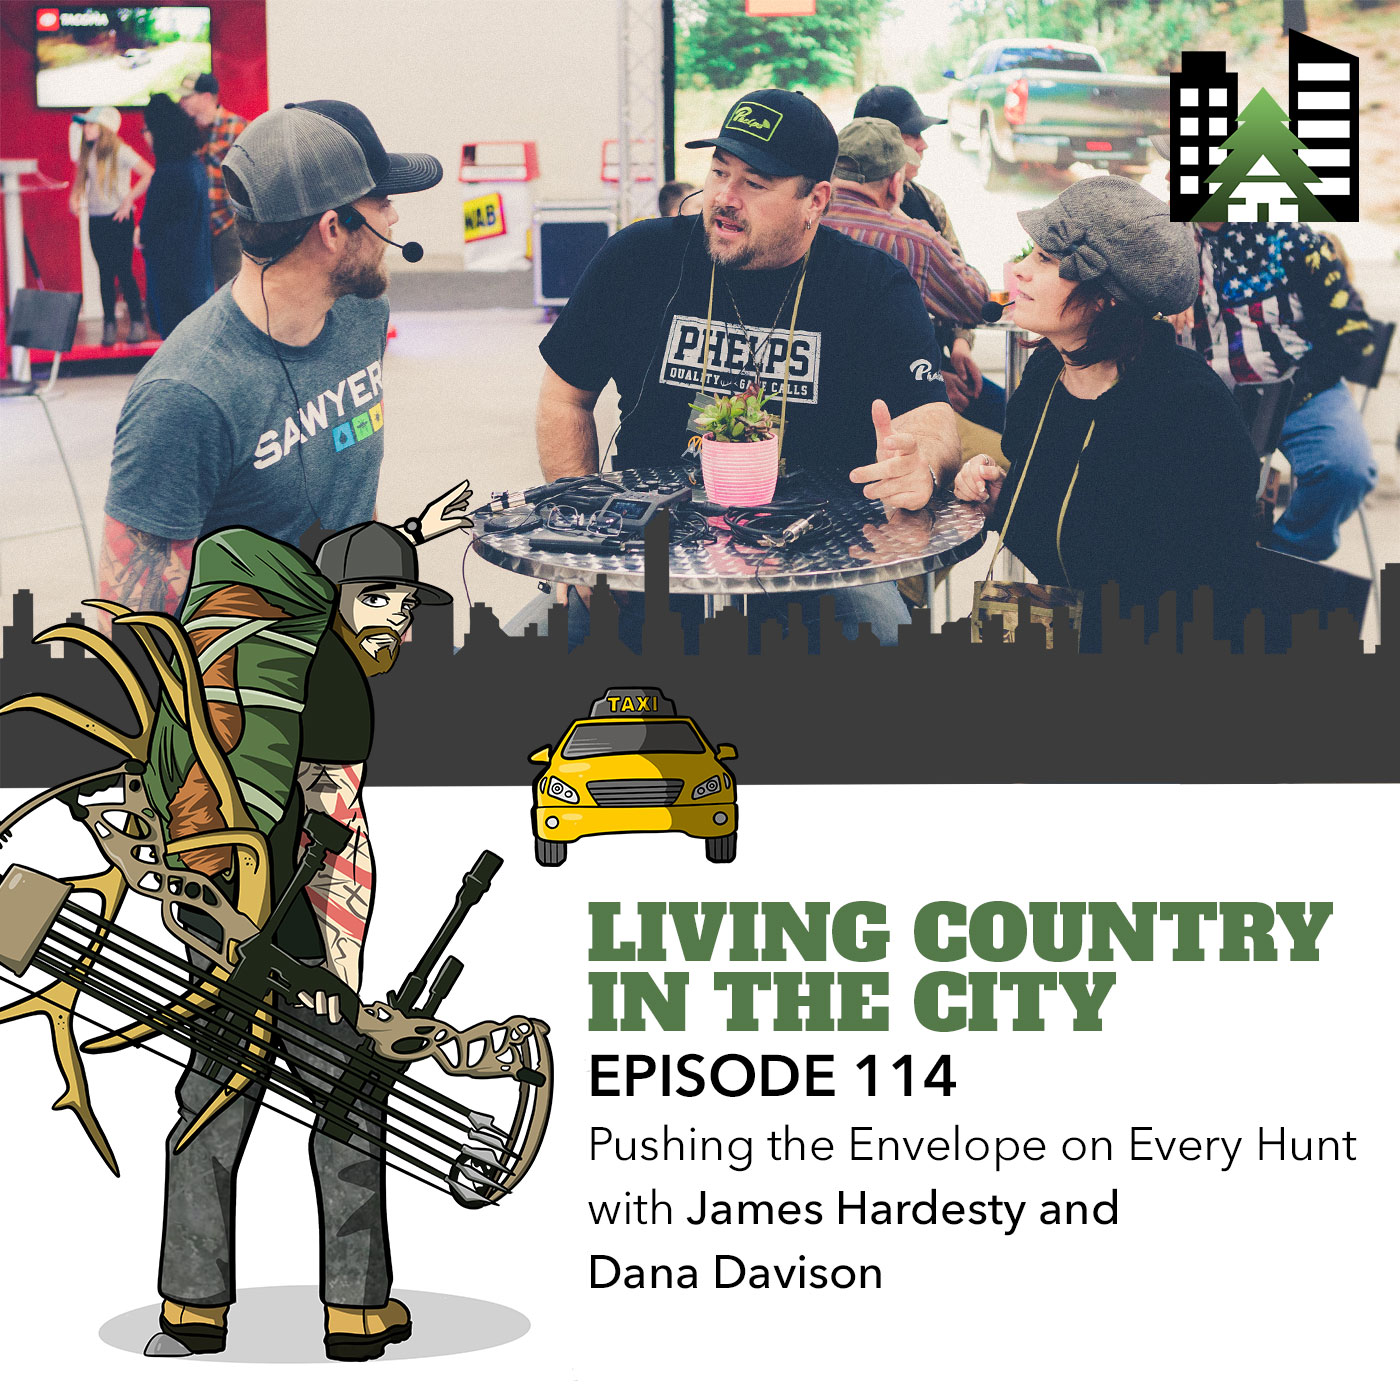 Living Country in the City - Episode 114 - Pushing the Envelope on Every Hunt with James Hardesty and Dana Davison